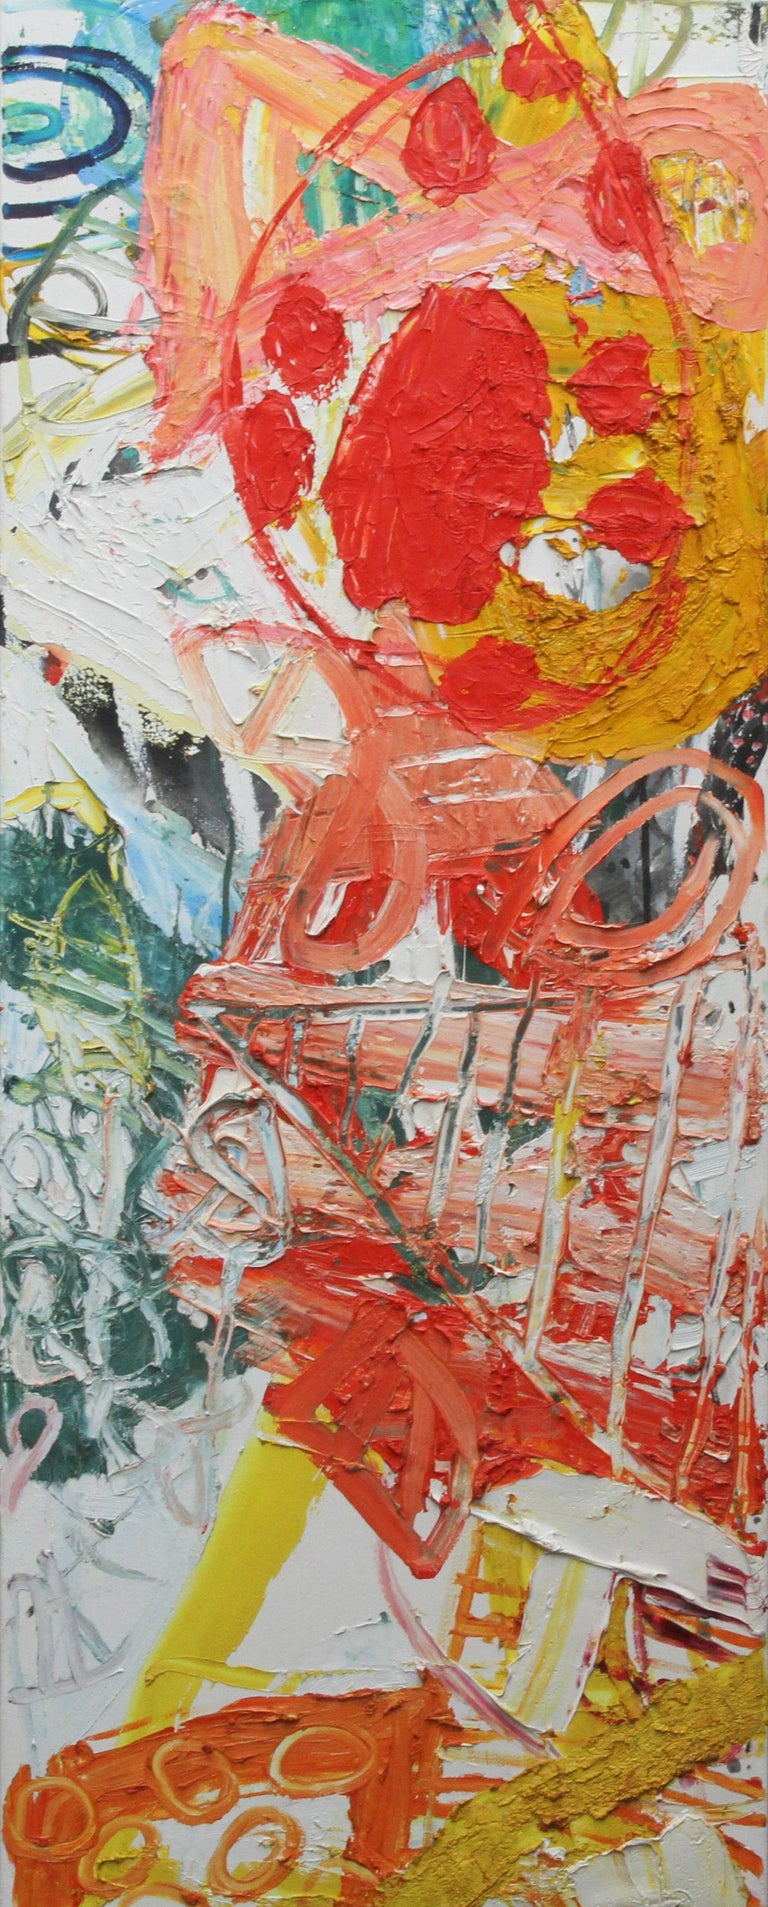 Midsummer - Scottish 1998 exhibited art Abstract Expressionist oil painting - Painting by Iain Robertson